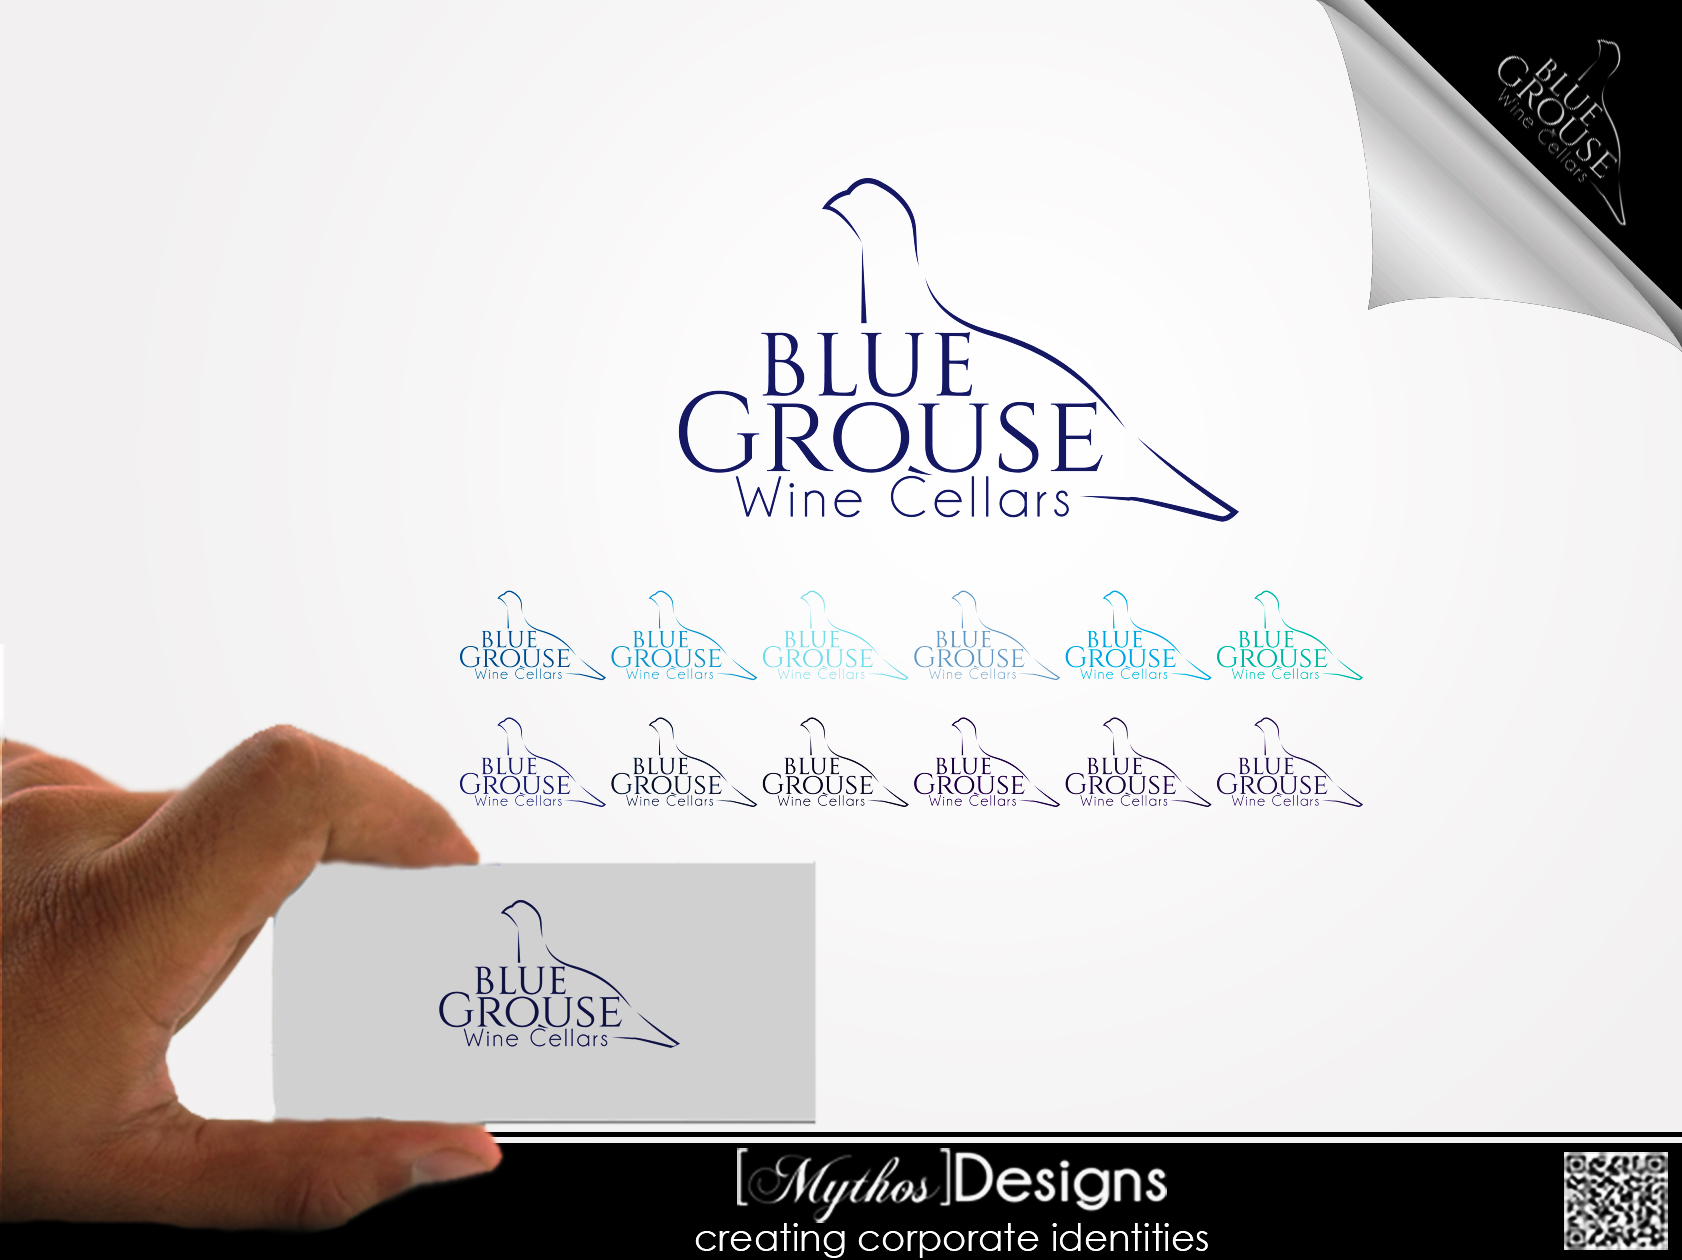 Logo Design by Mythos Designs - Entry No. 182 in the Logo Design Contest Creative Logo Design for Blue Grouse Wine Cellars.